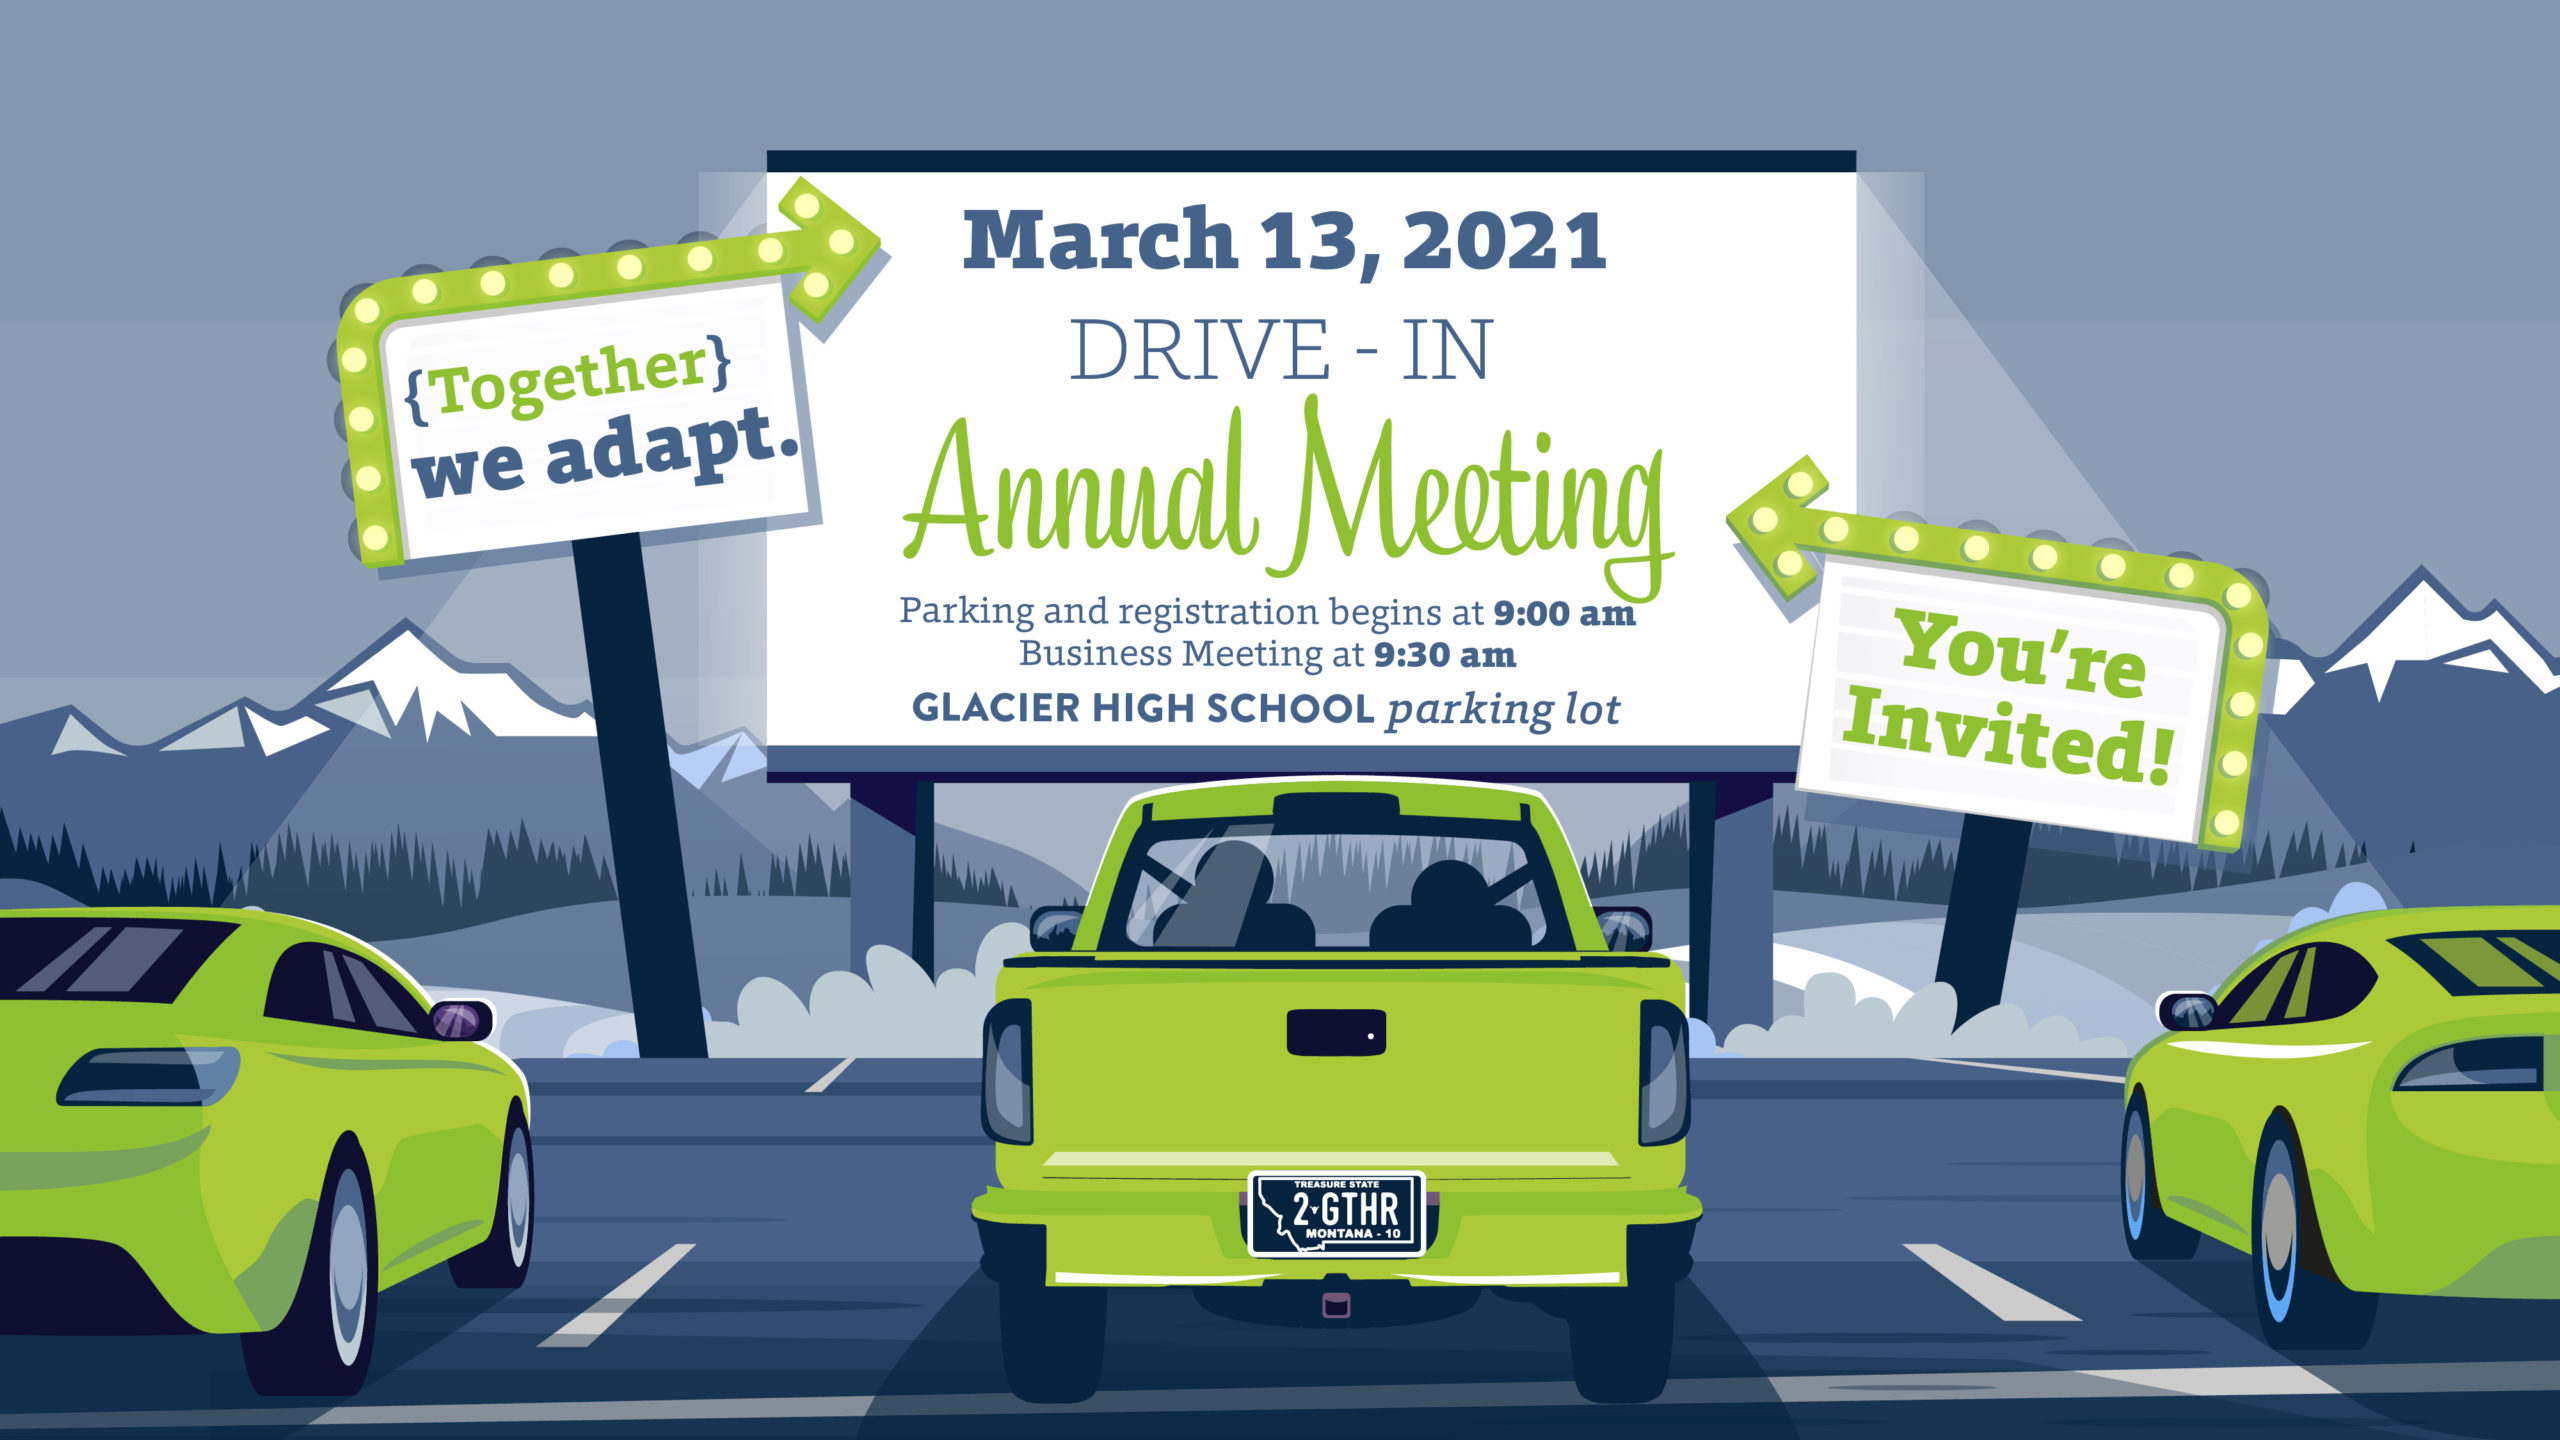 2021 Drive-In Annual Meeting